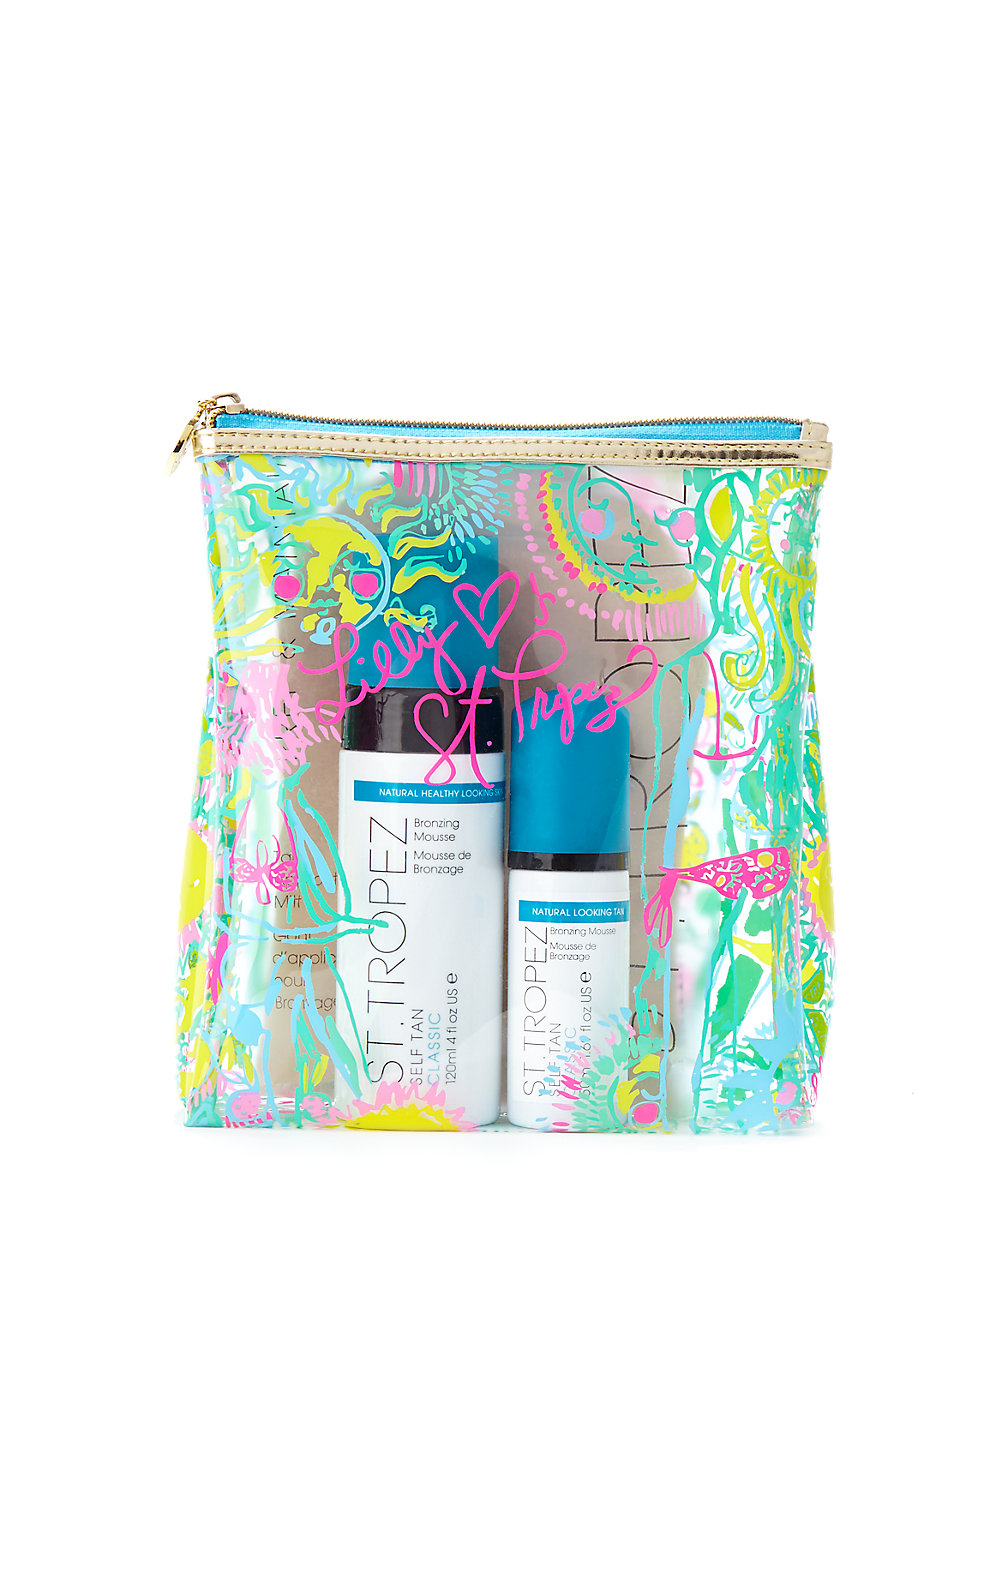 Lilly Pulitzer St. Tropez Lilly Pulitzer - The Ultimate Escape Kit